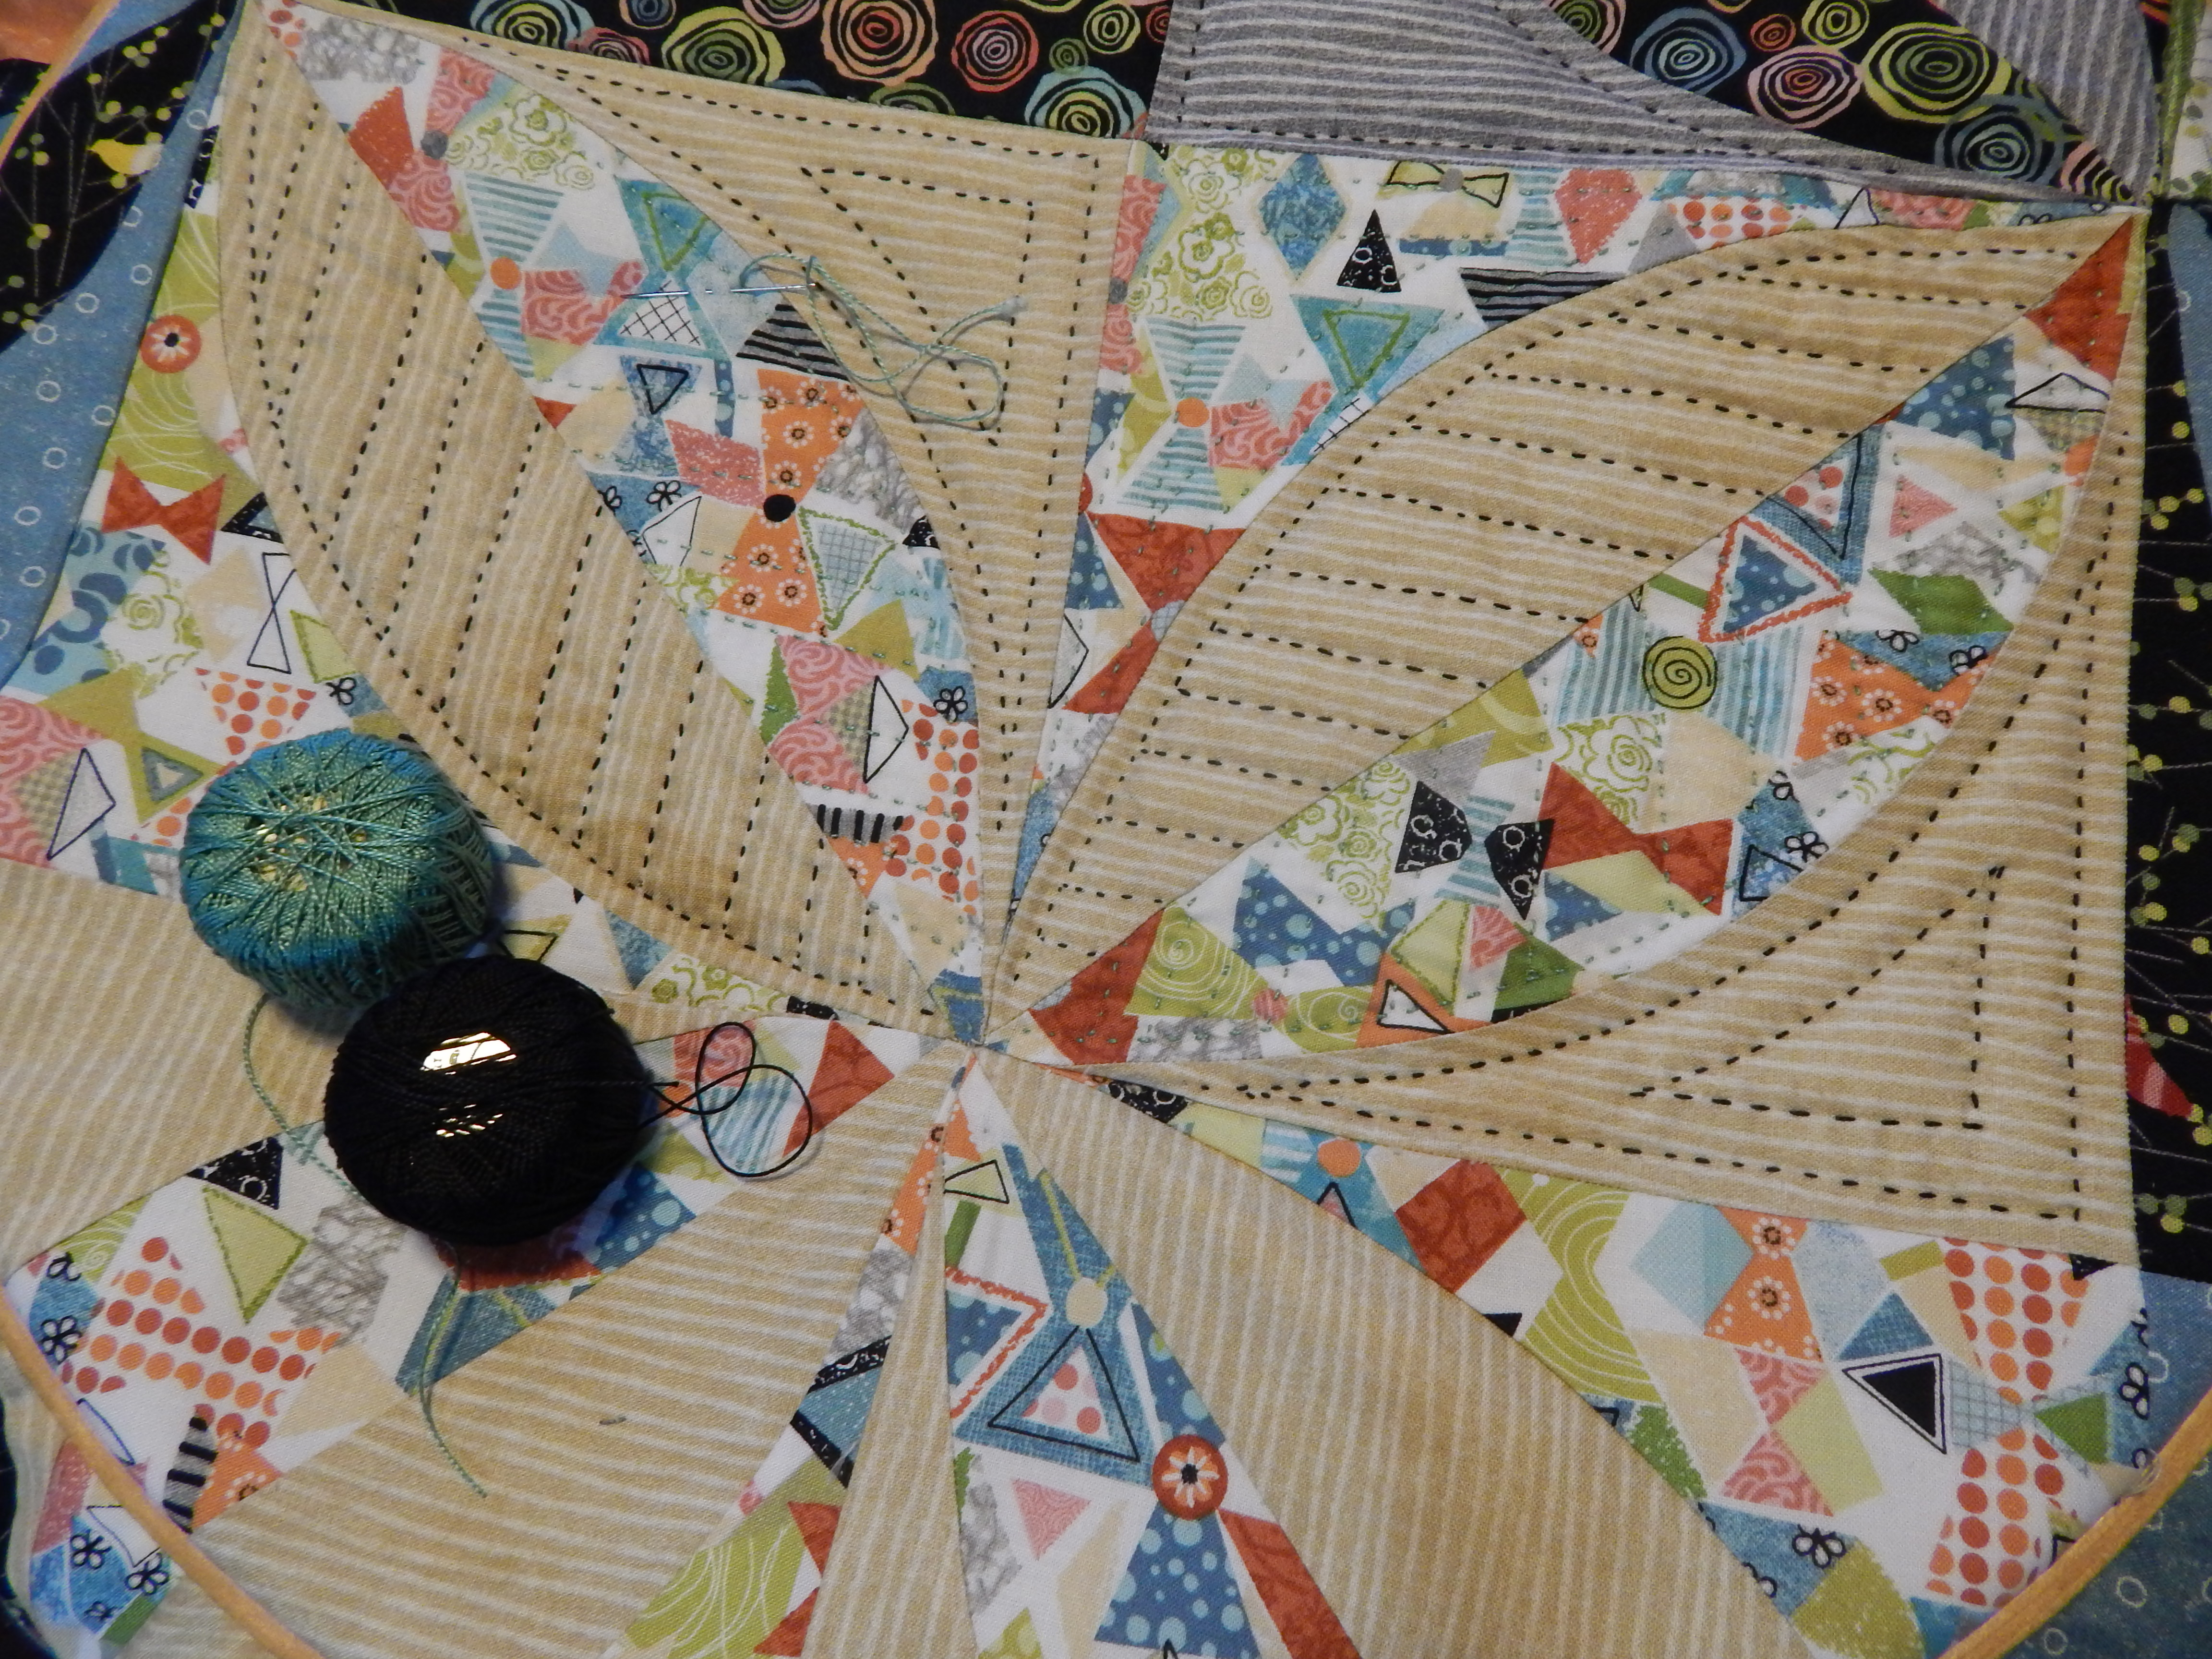 Big And Small Tim Latimer Quilts Etc